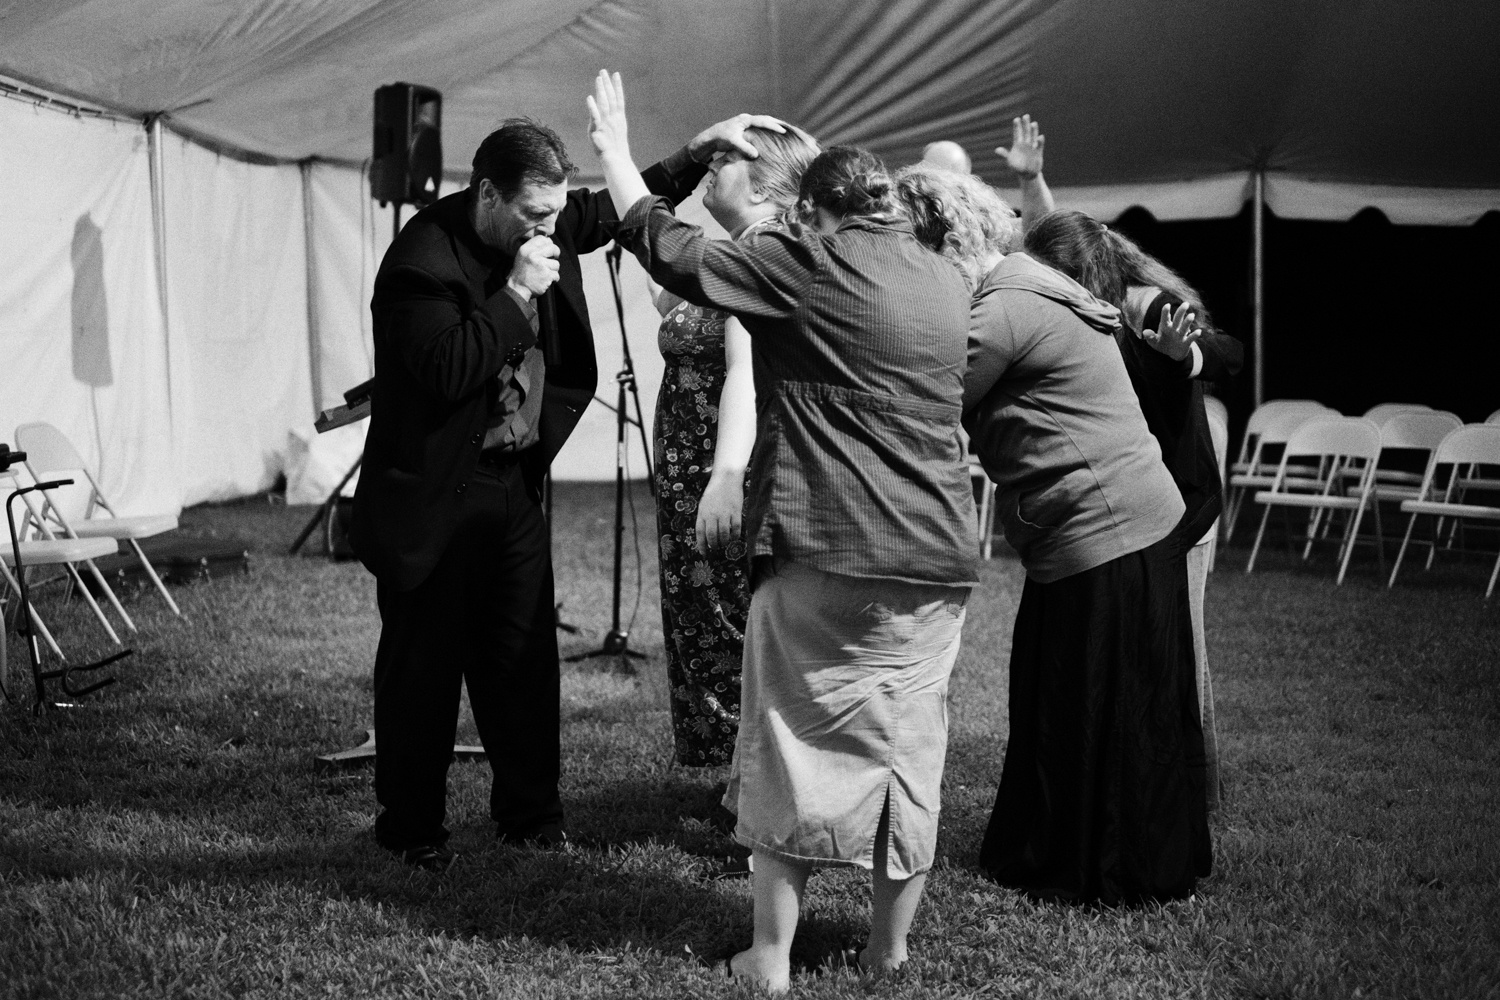 Roger May . August 2, 2014. Preacher Roger Stevens prays for a woman at a tent revival in Baisden, Mingo County, West Virginia.